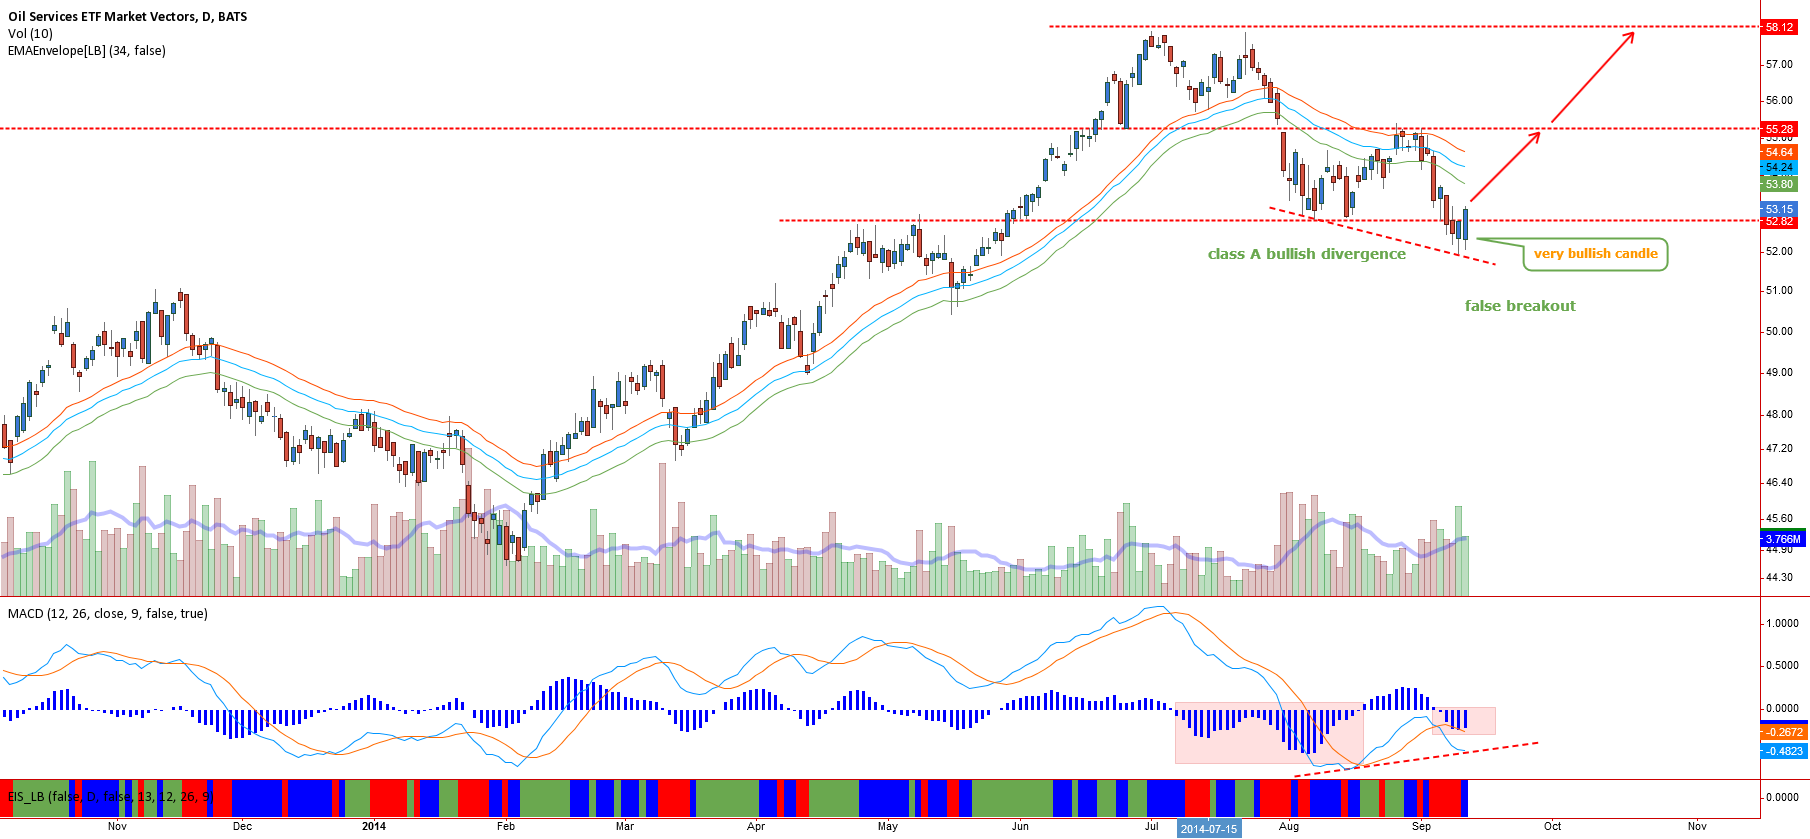 OIL Services - Bullish divergence at value